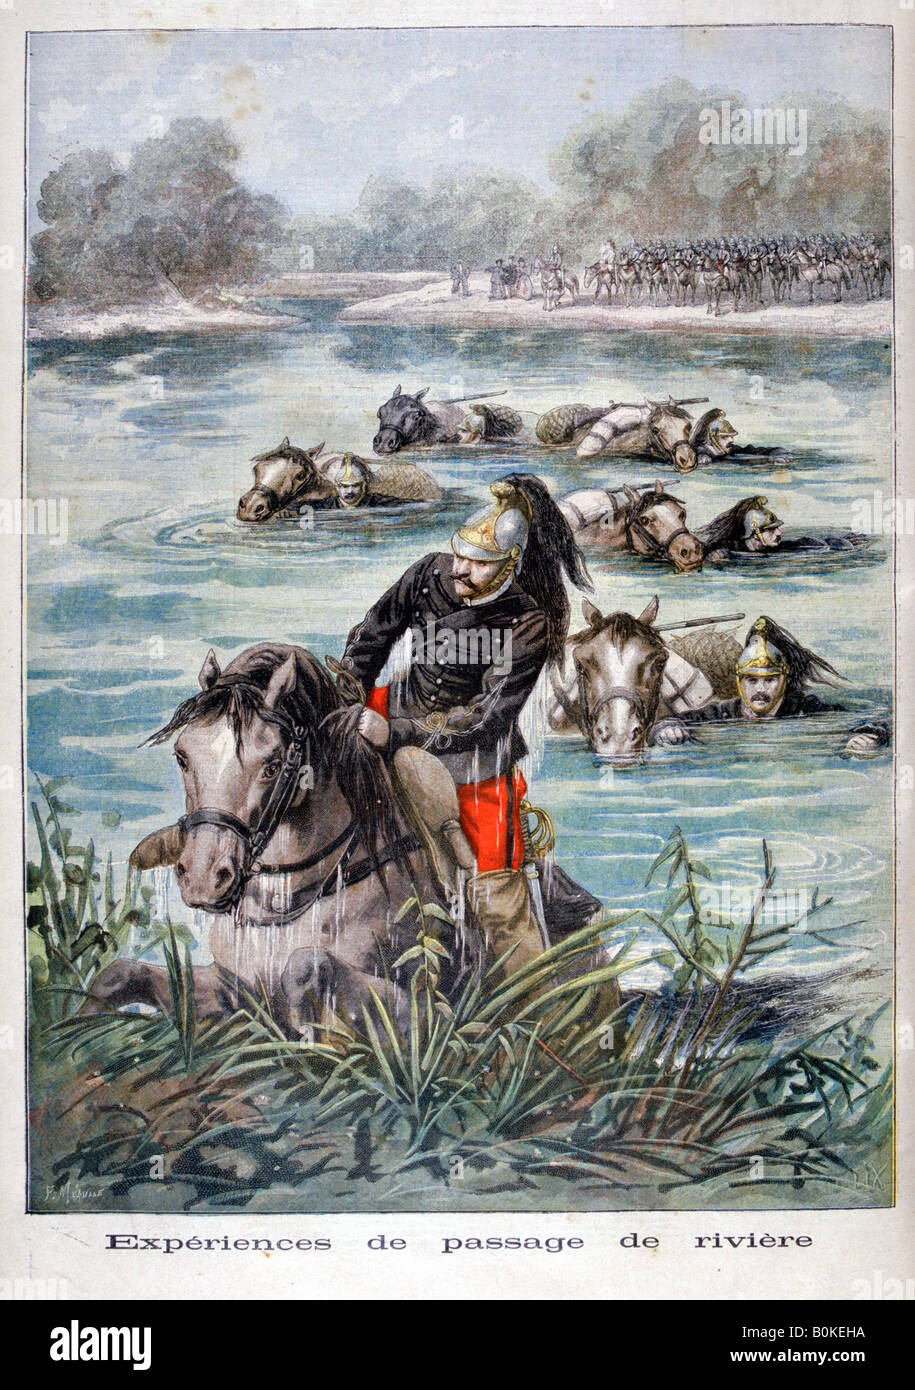 French cavalry fording a river, 1896. Artist: Frederic Lix - Stock Image